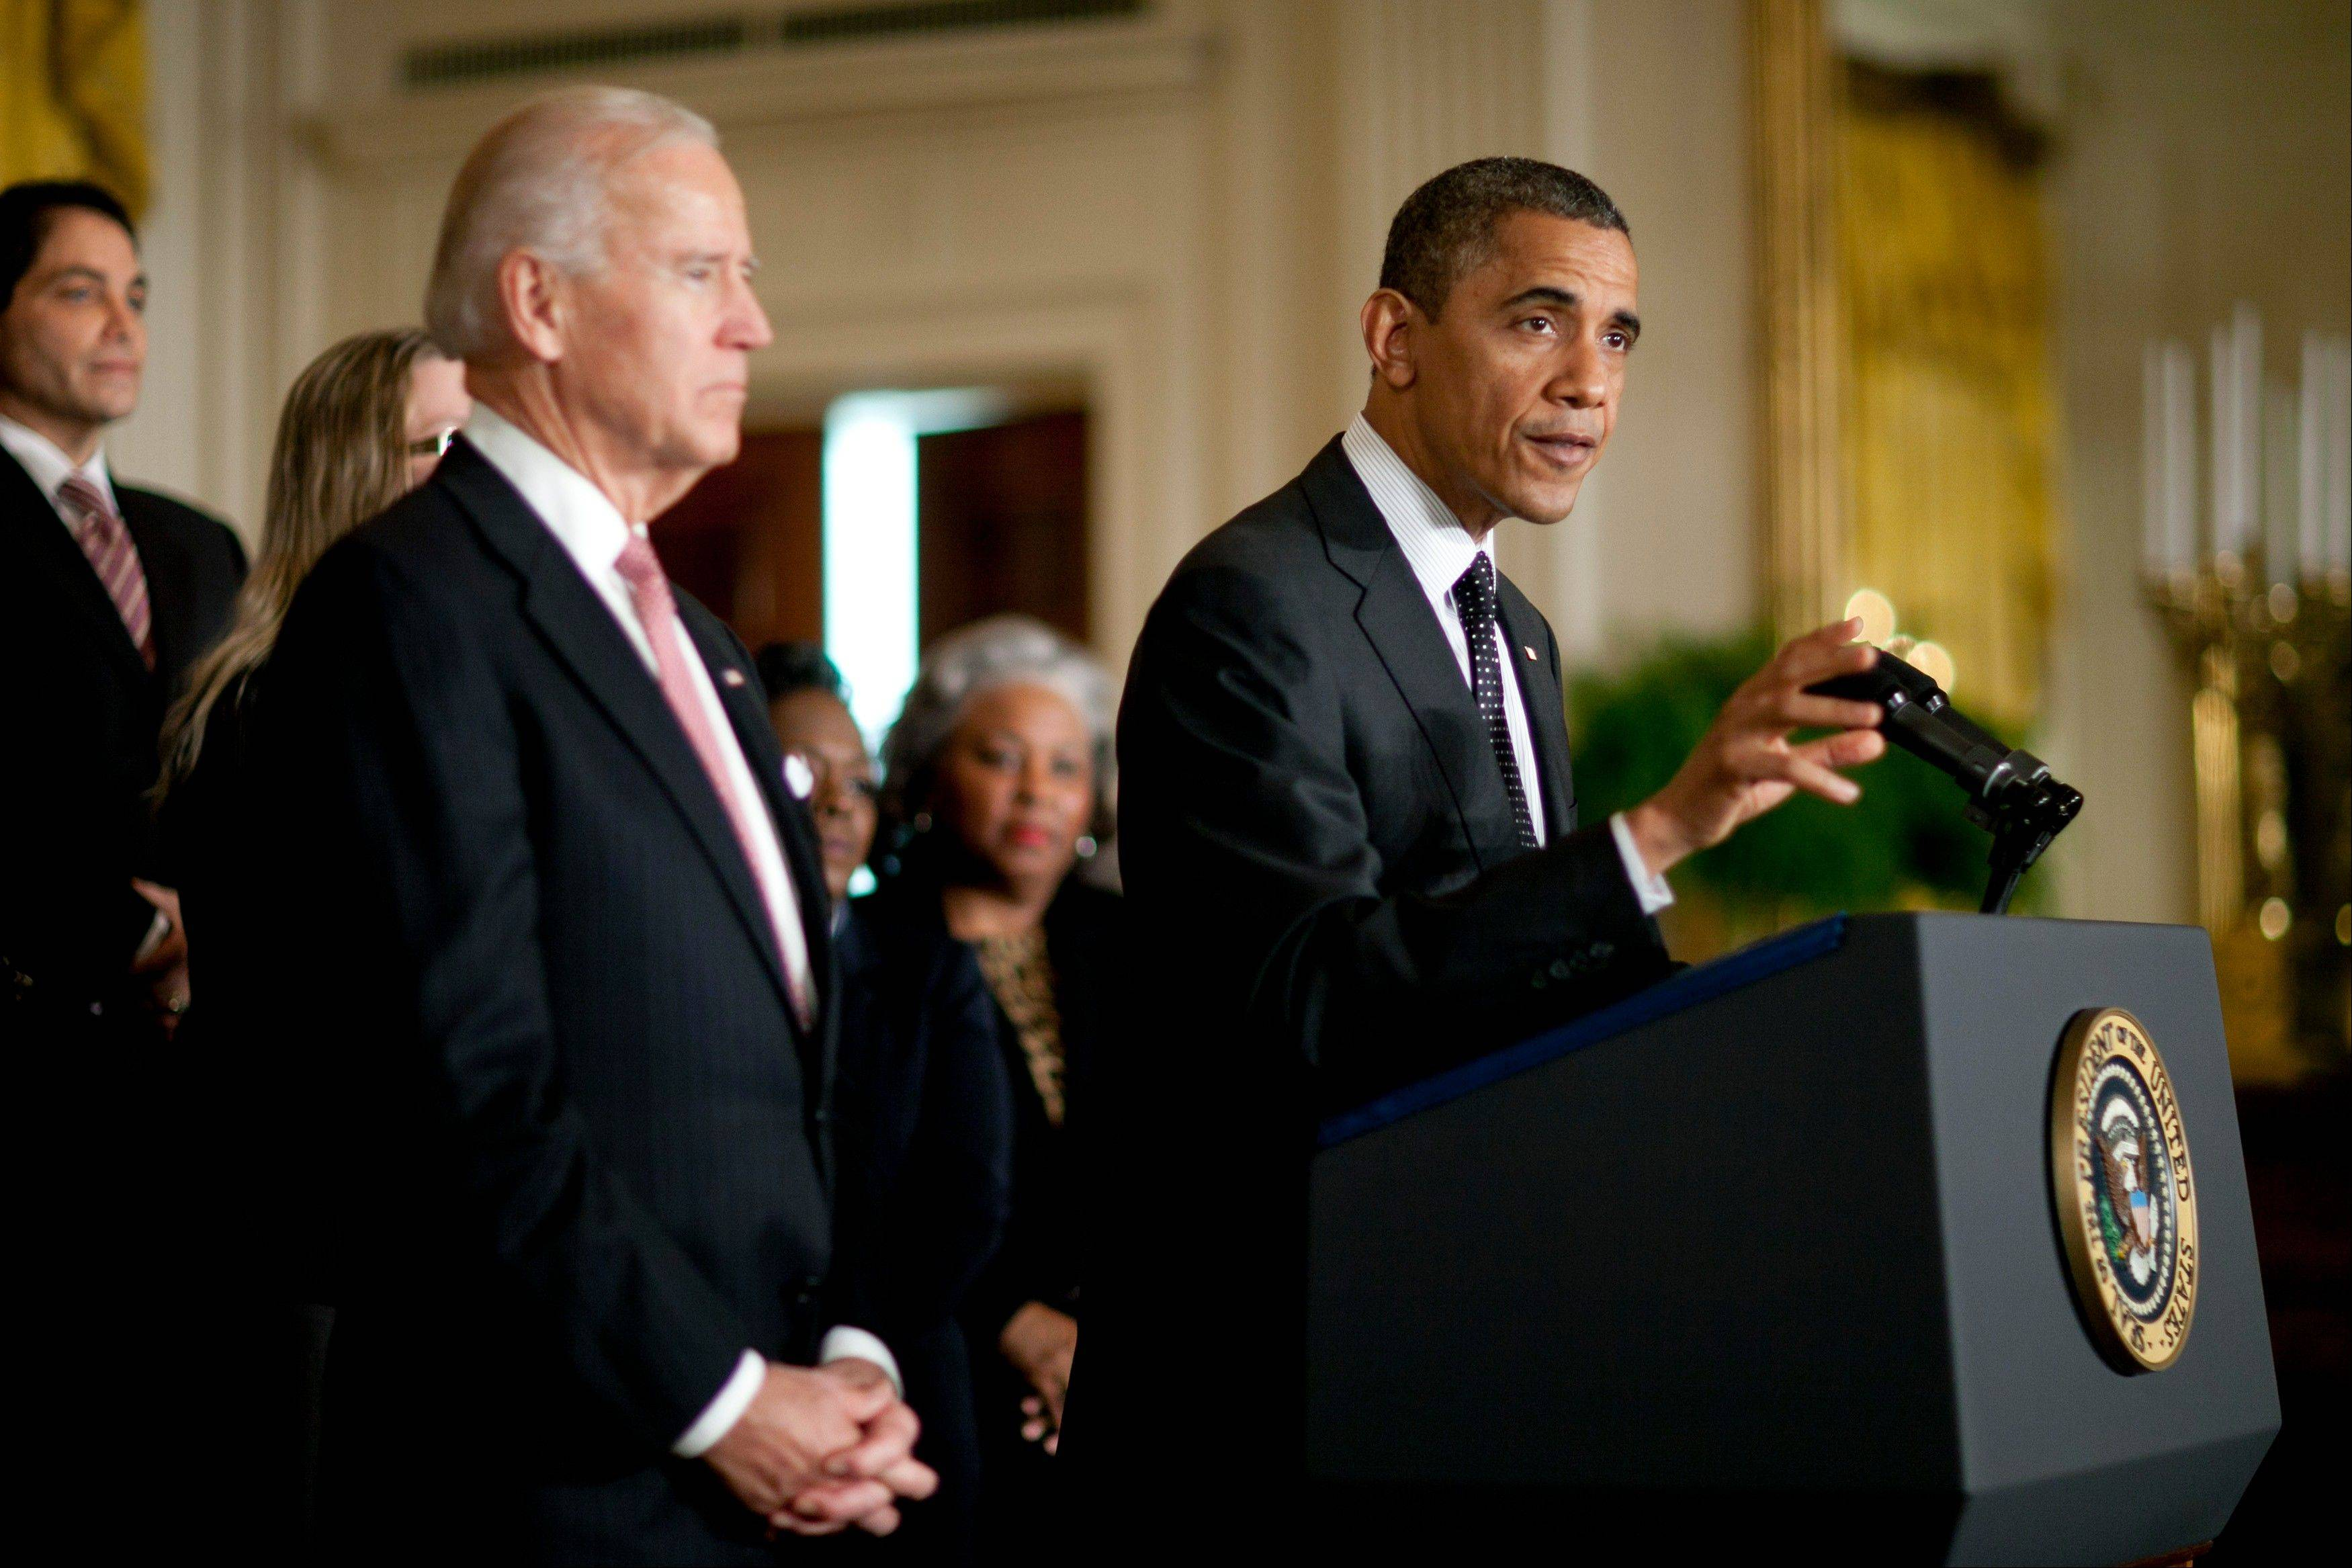 U.S. President Barack Obama, right, speaks while U.S. Vice President Joseph �Joe� Biden listens in the East Room of the White House in Washington, D.C., U.S., on Friday, Nov. 9, 2012. Obama is urging quick action by Congress to keep taxes from rising on middle-income Americans at the start of the new year and begin negotiations to avert automatic spending cuts.